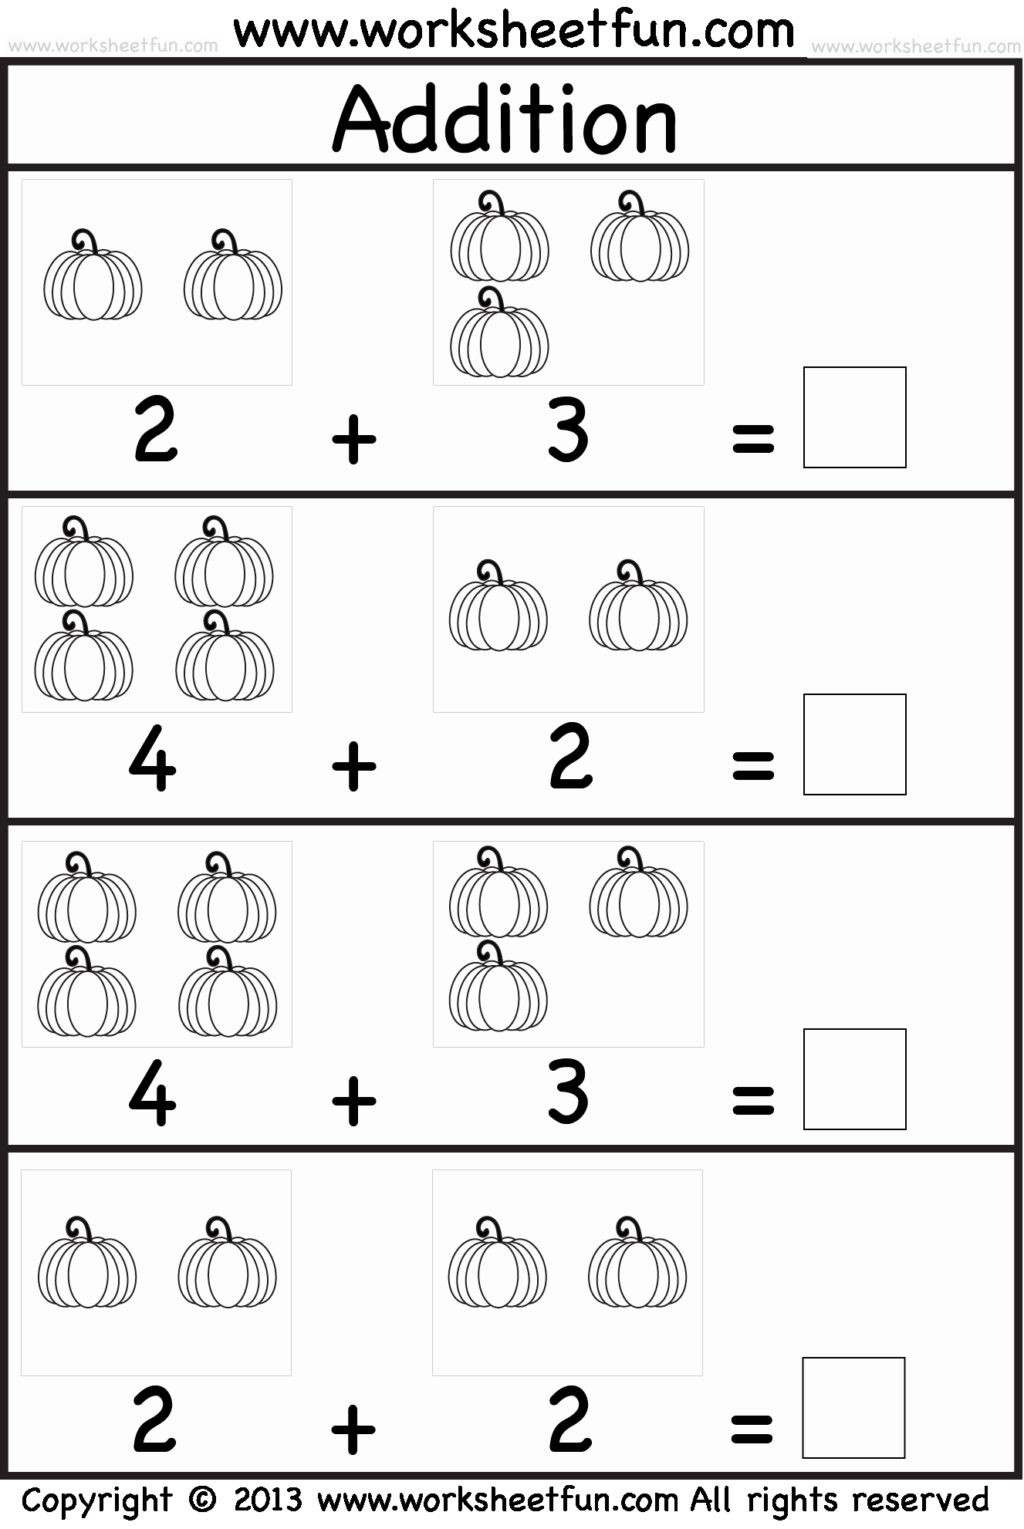 Kindergarten Math Worksheet Addition Worksheet Worksheet Free Printable Kindergartenh